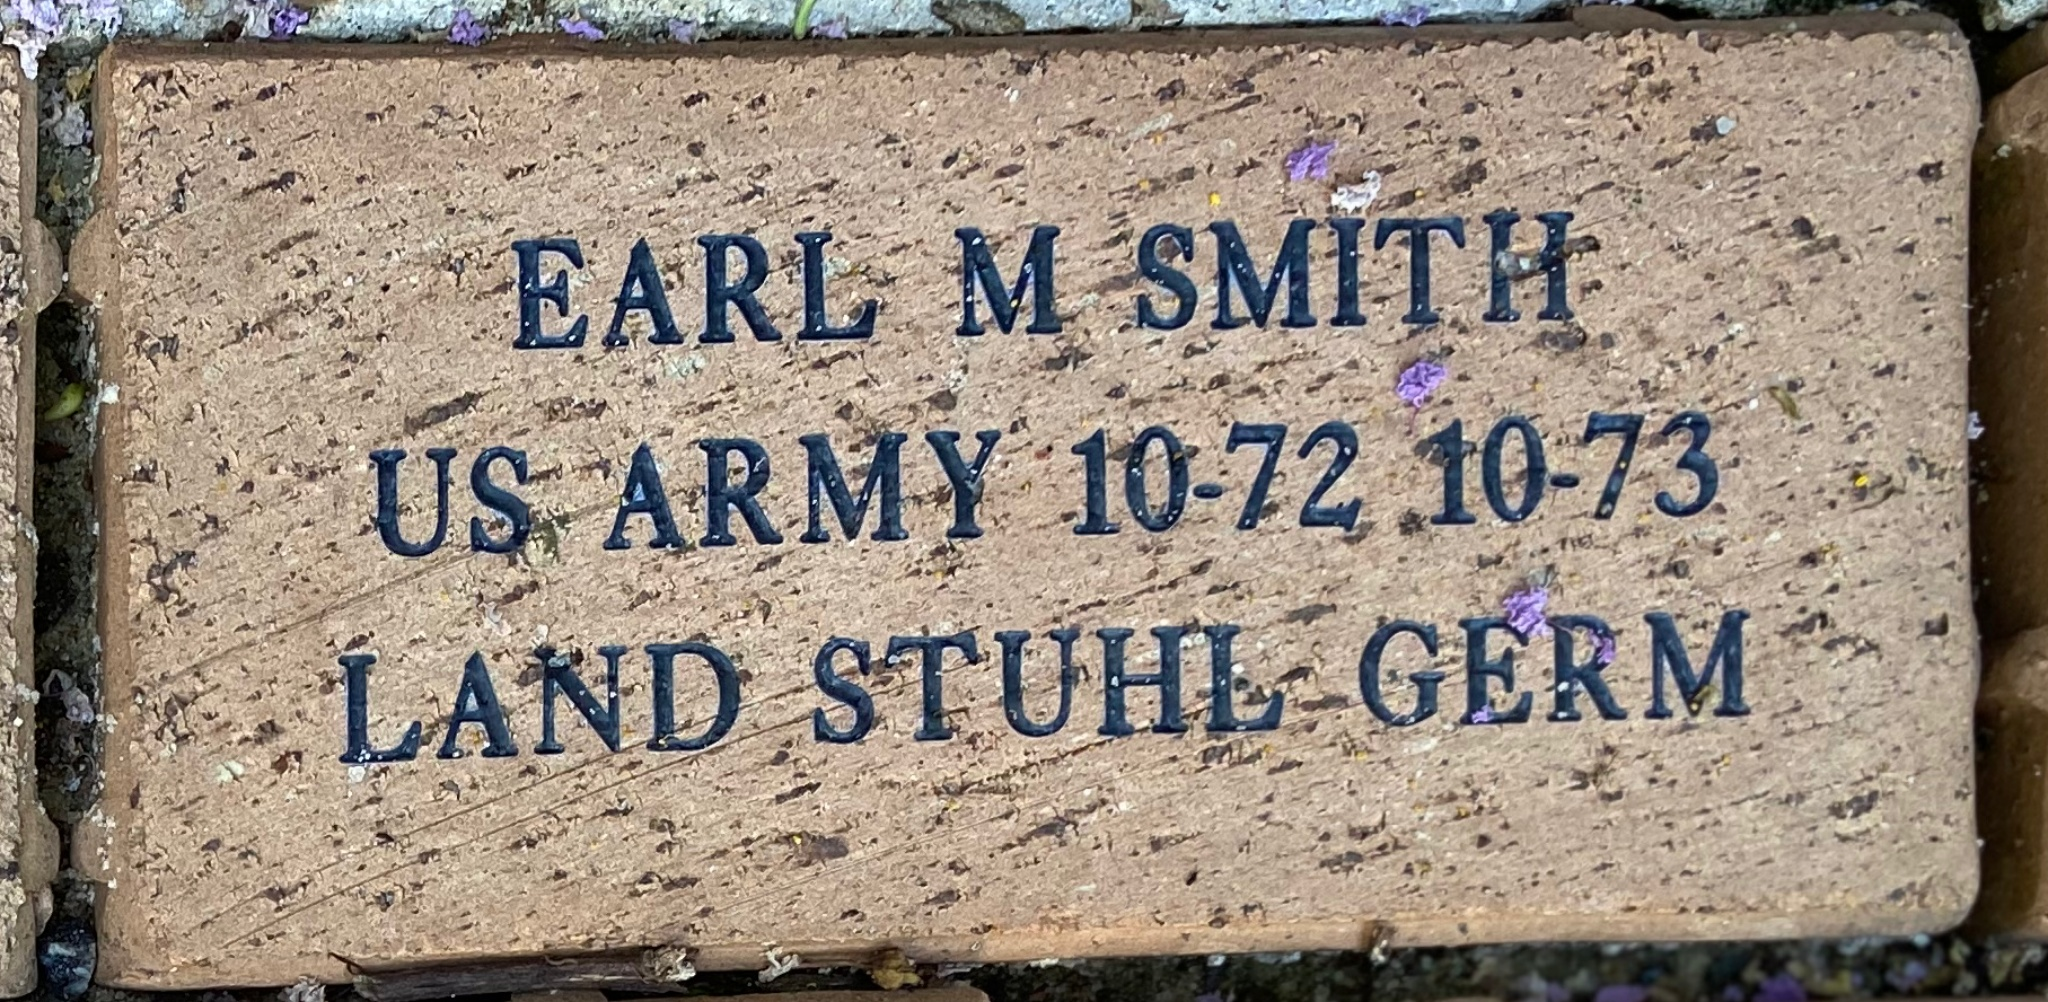 EARL M SMITH US ARMY 10-72 10-73 LAND STUHL GERM